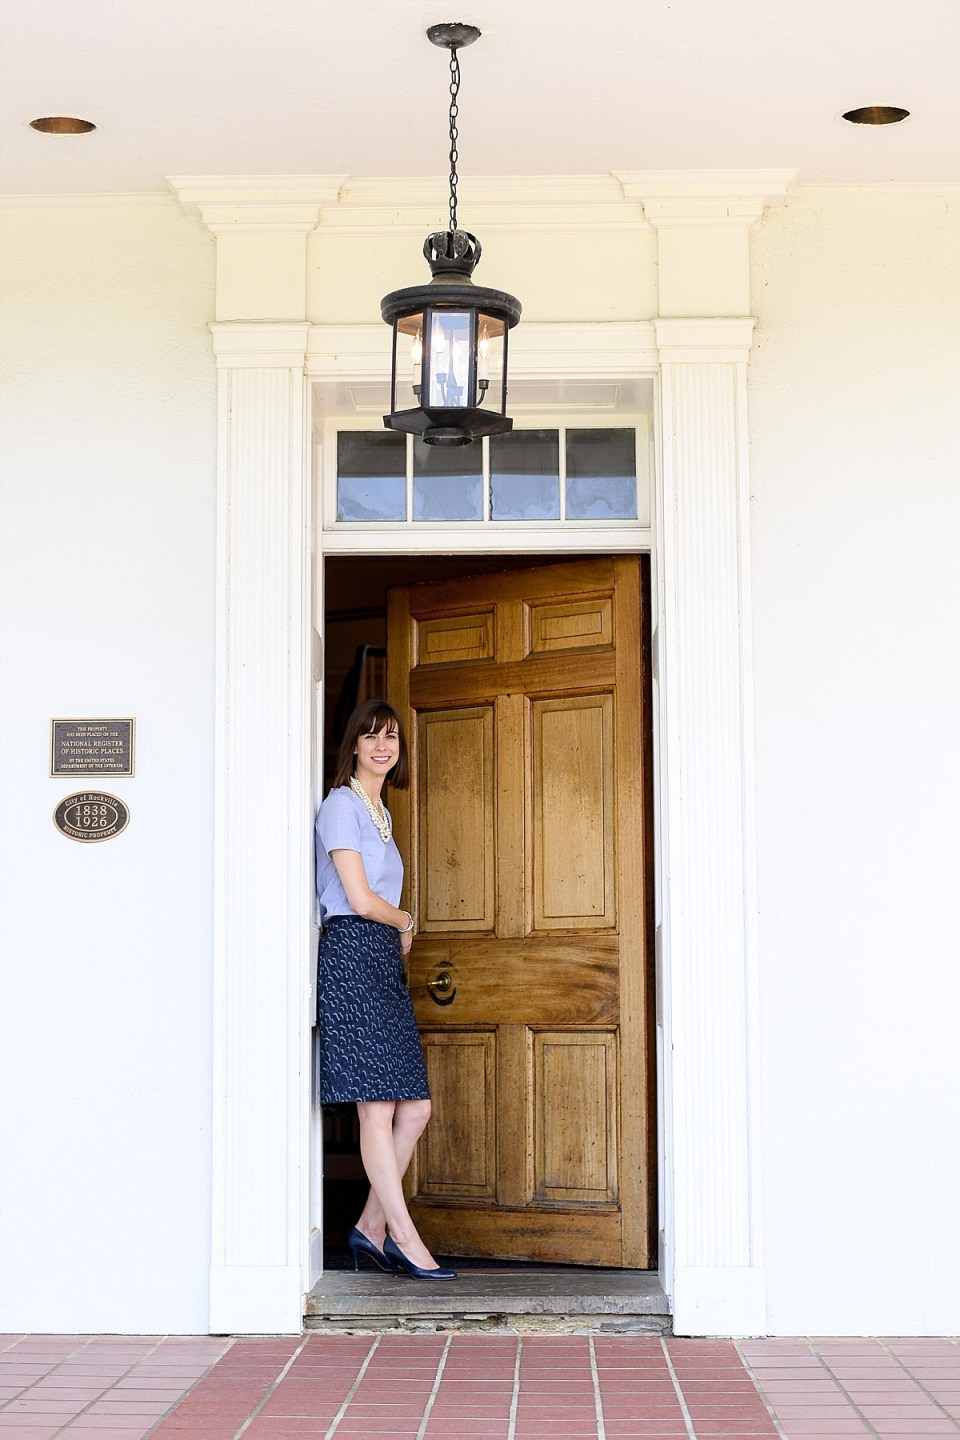 Meghan Evans Clothing, Clothing for Tall Women, Ethically Made Clothing, Made in Washington DC, Made in USA